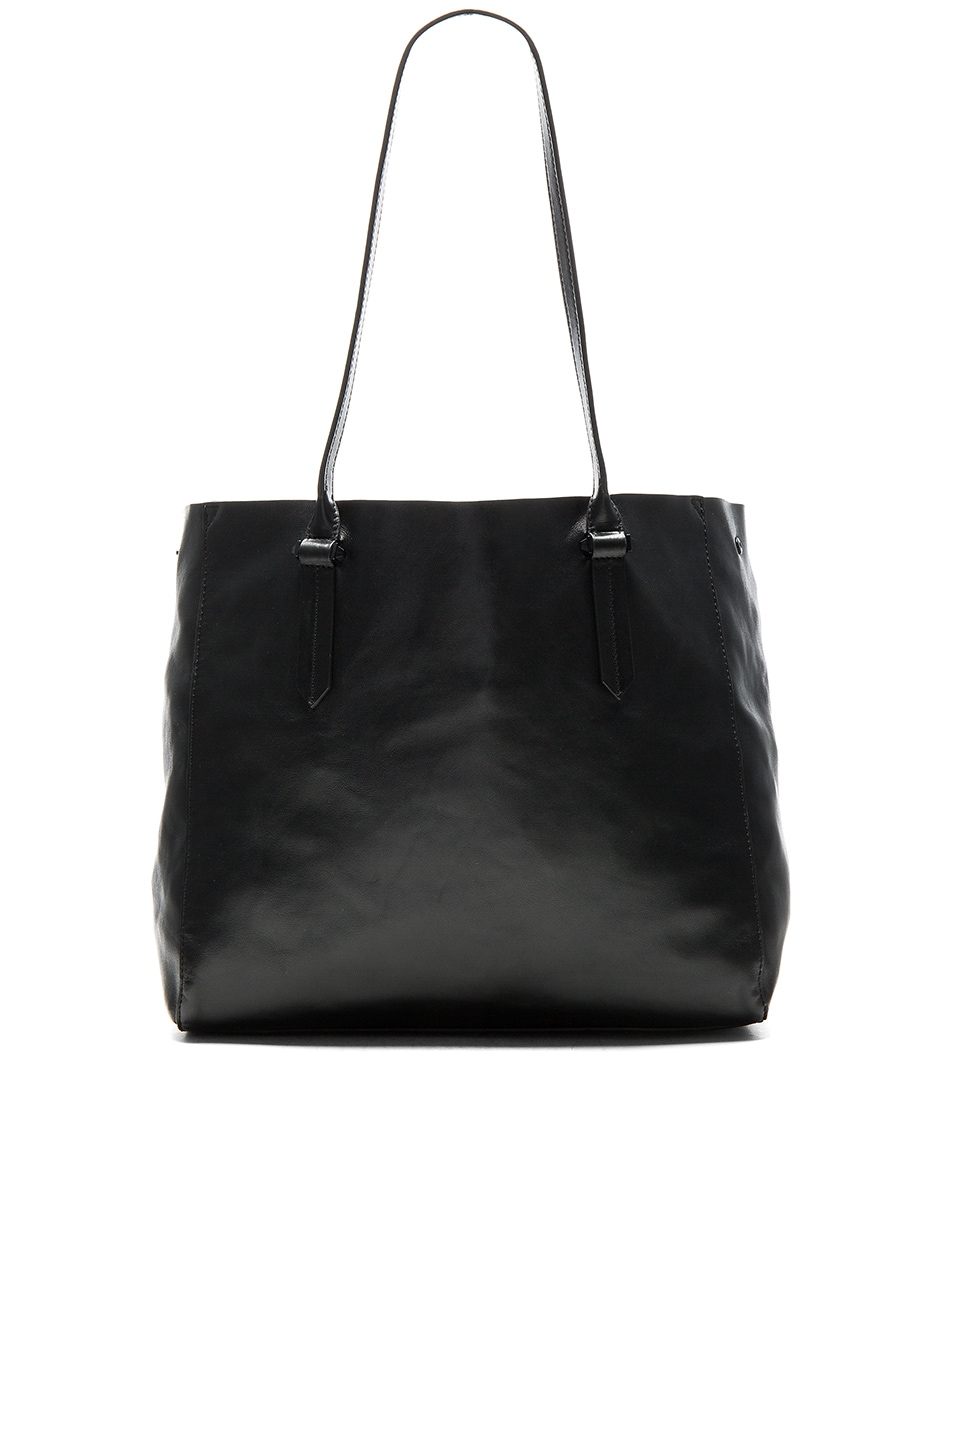 Izzy Tote Bag by KENDALL + KYLIE